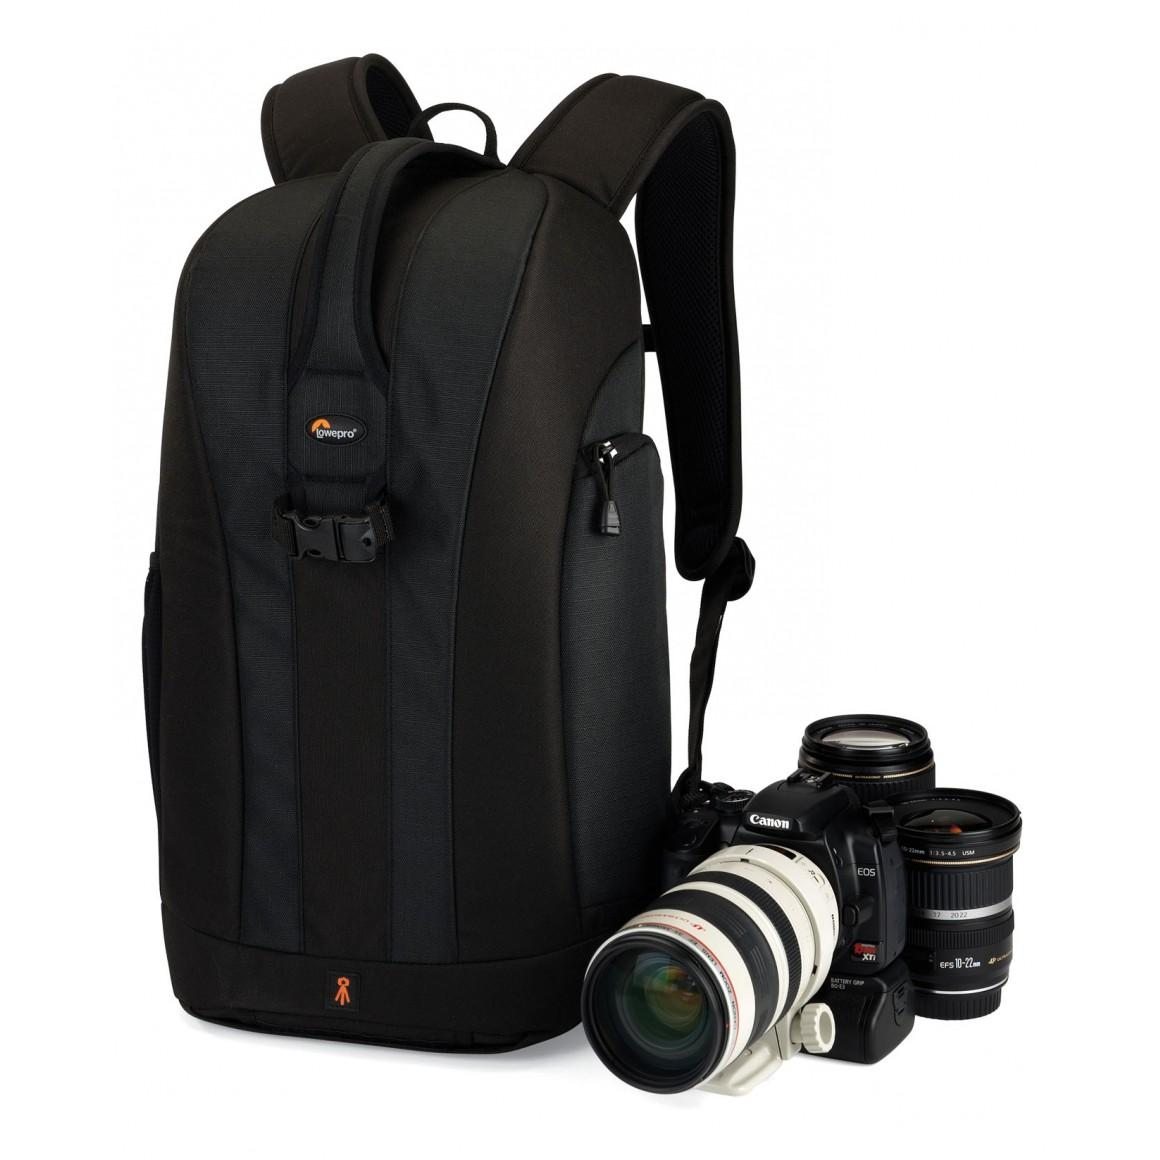 Camera Top Dslr Camera Bags amazon com lowepro flipside 300 dslr camera backpack hiking view larger